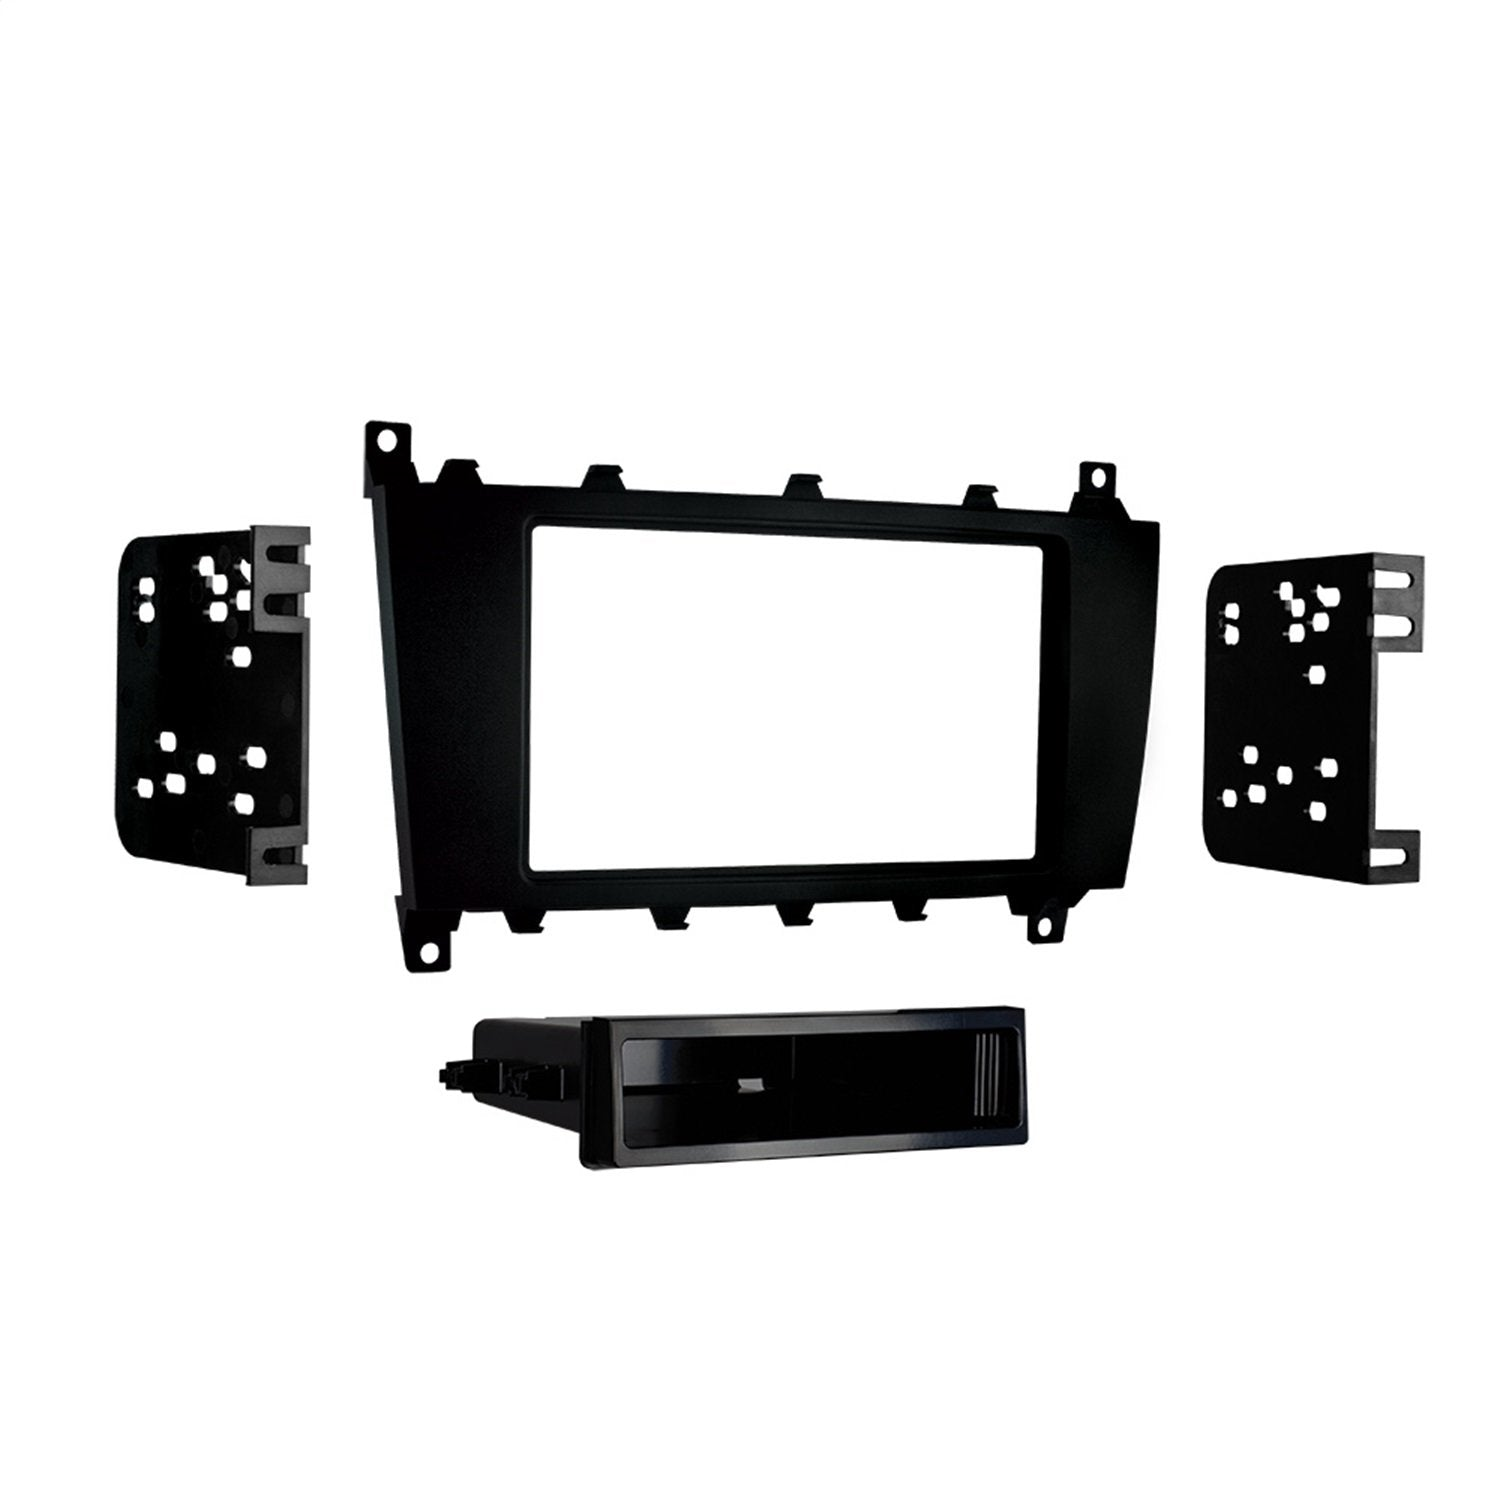 Metra 99-8721B Double or Single Din with Pocket Installation Kit for Mercedes-Benz Vehicles (Black)